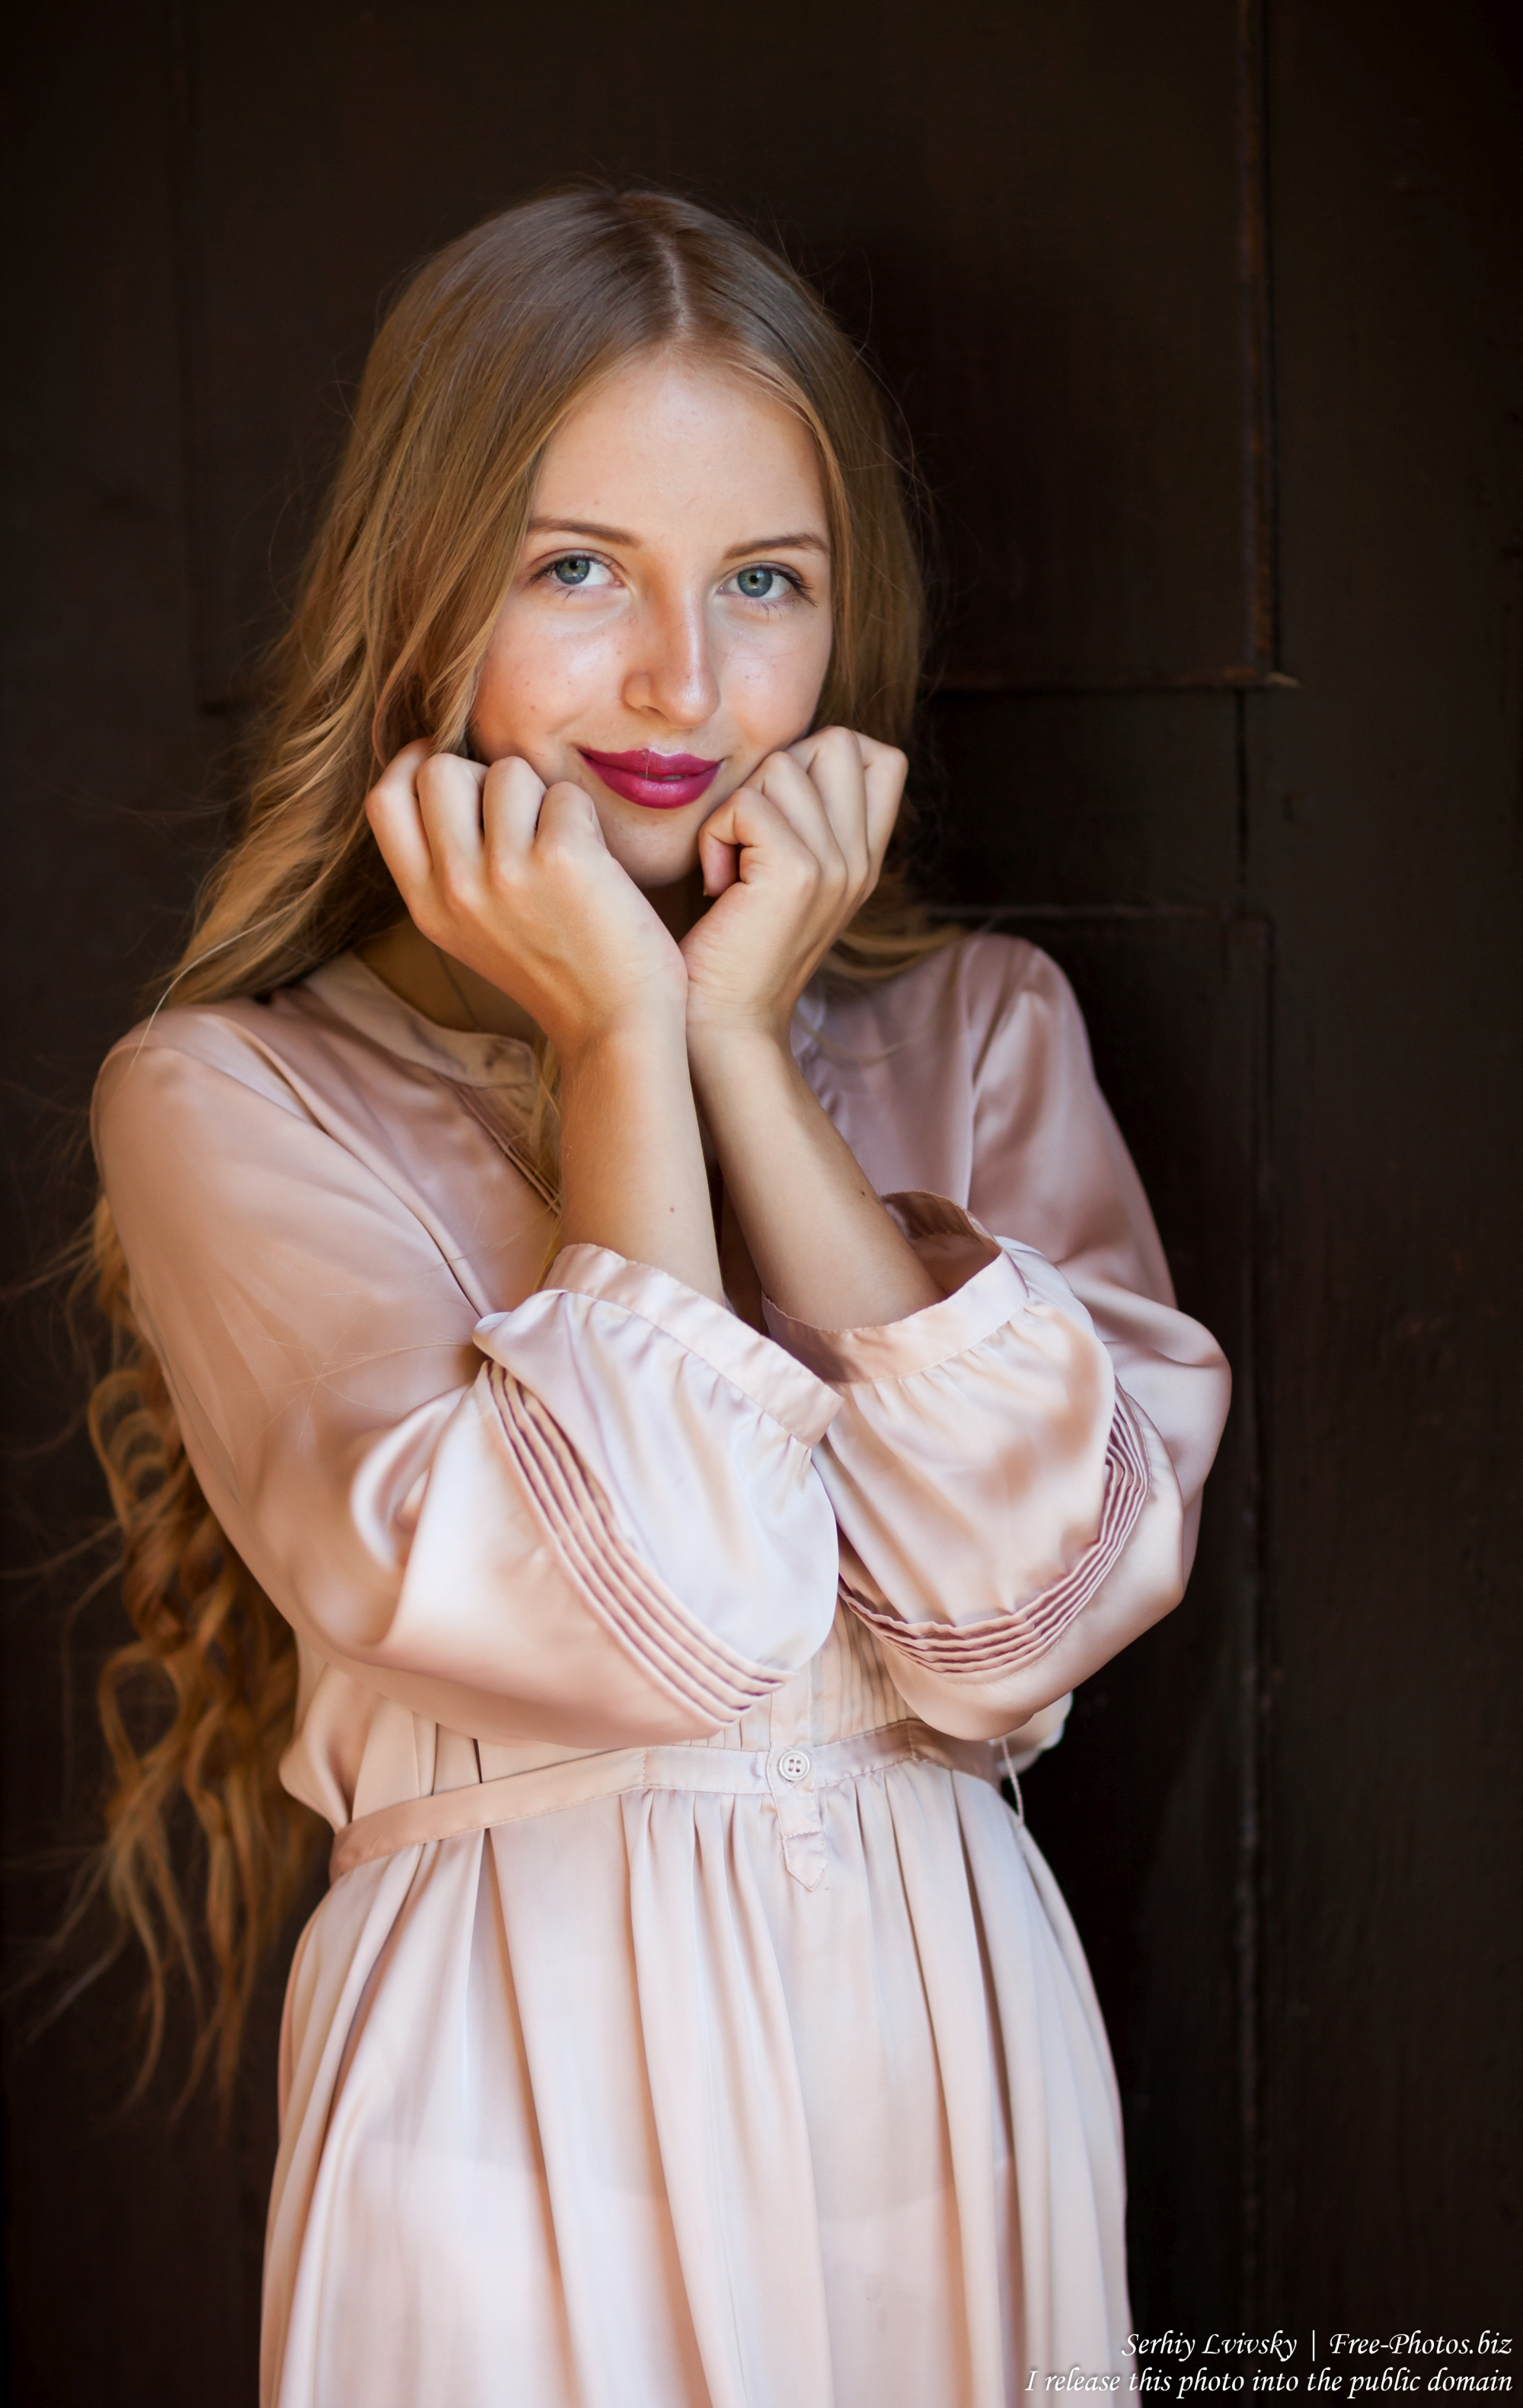 ania_a_14-year-old_natural_blonde_girl_photographed_by_serhiy_lvivsky_in_august_2017_17